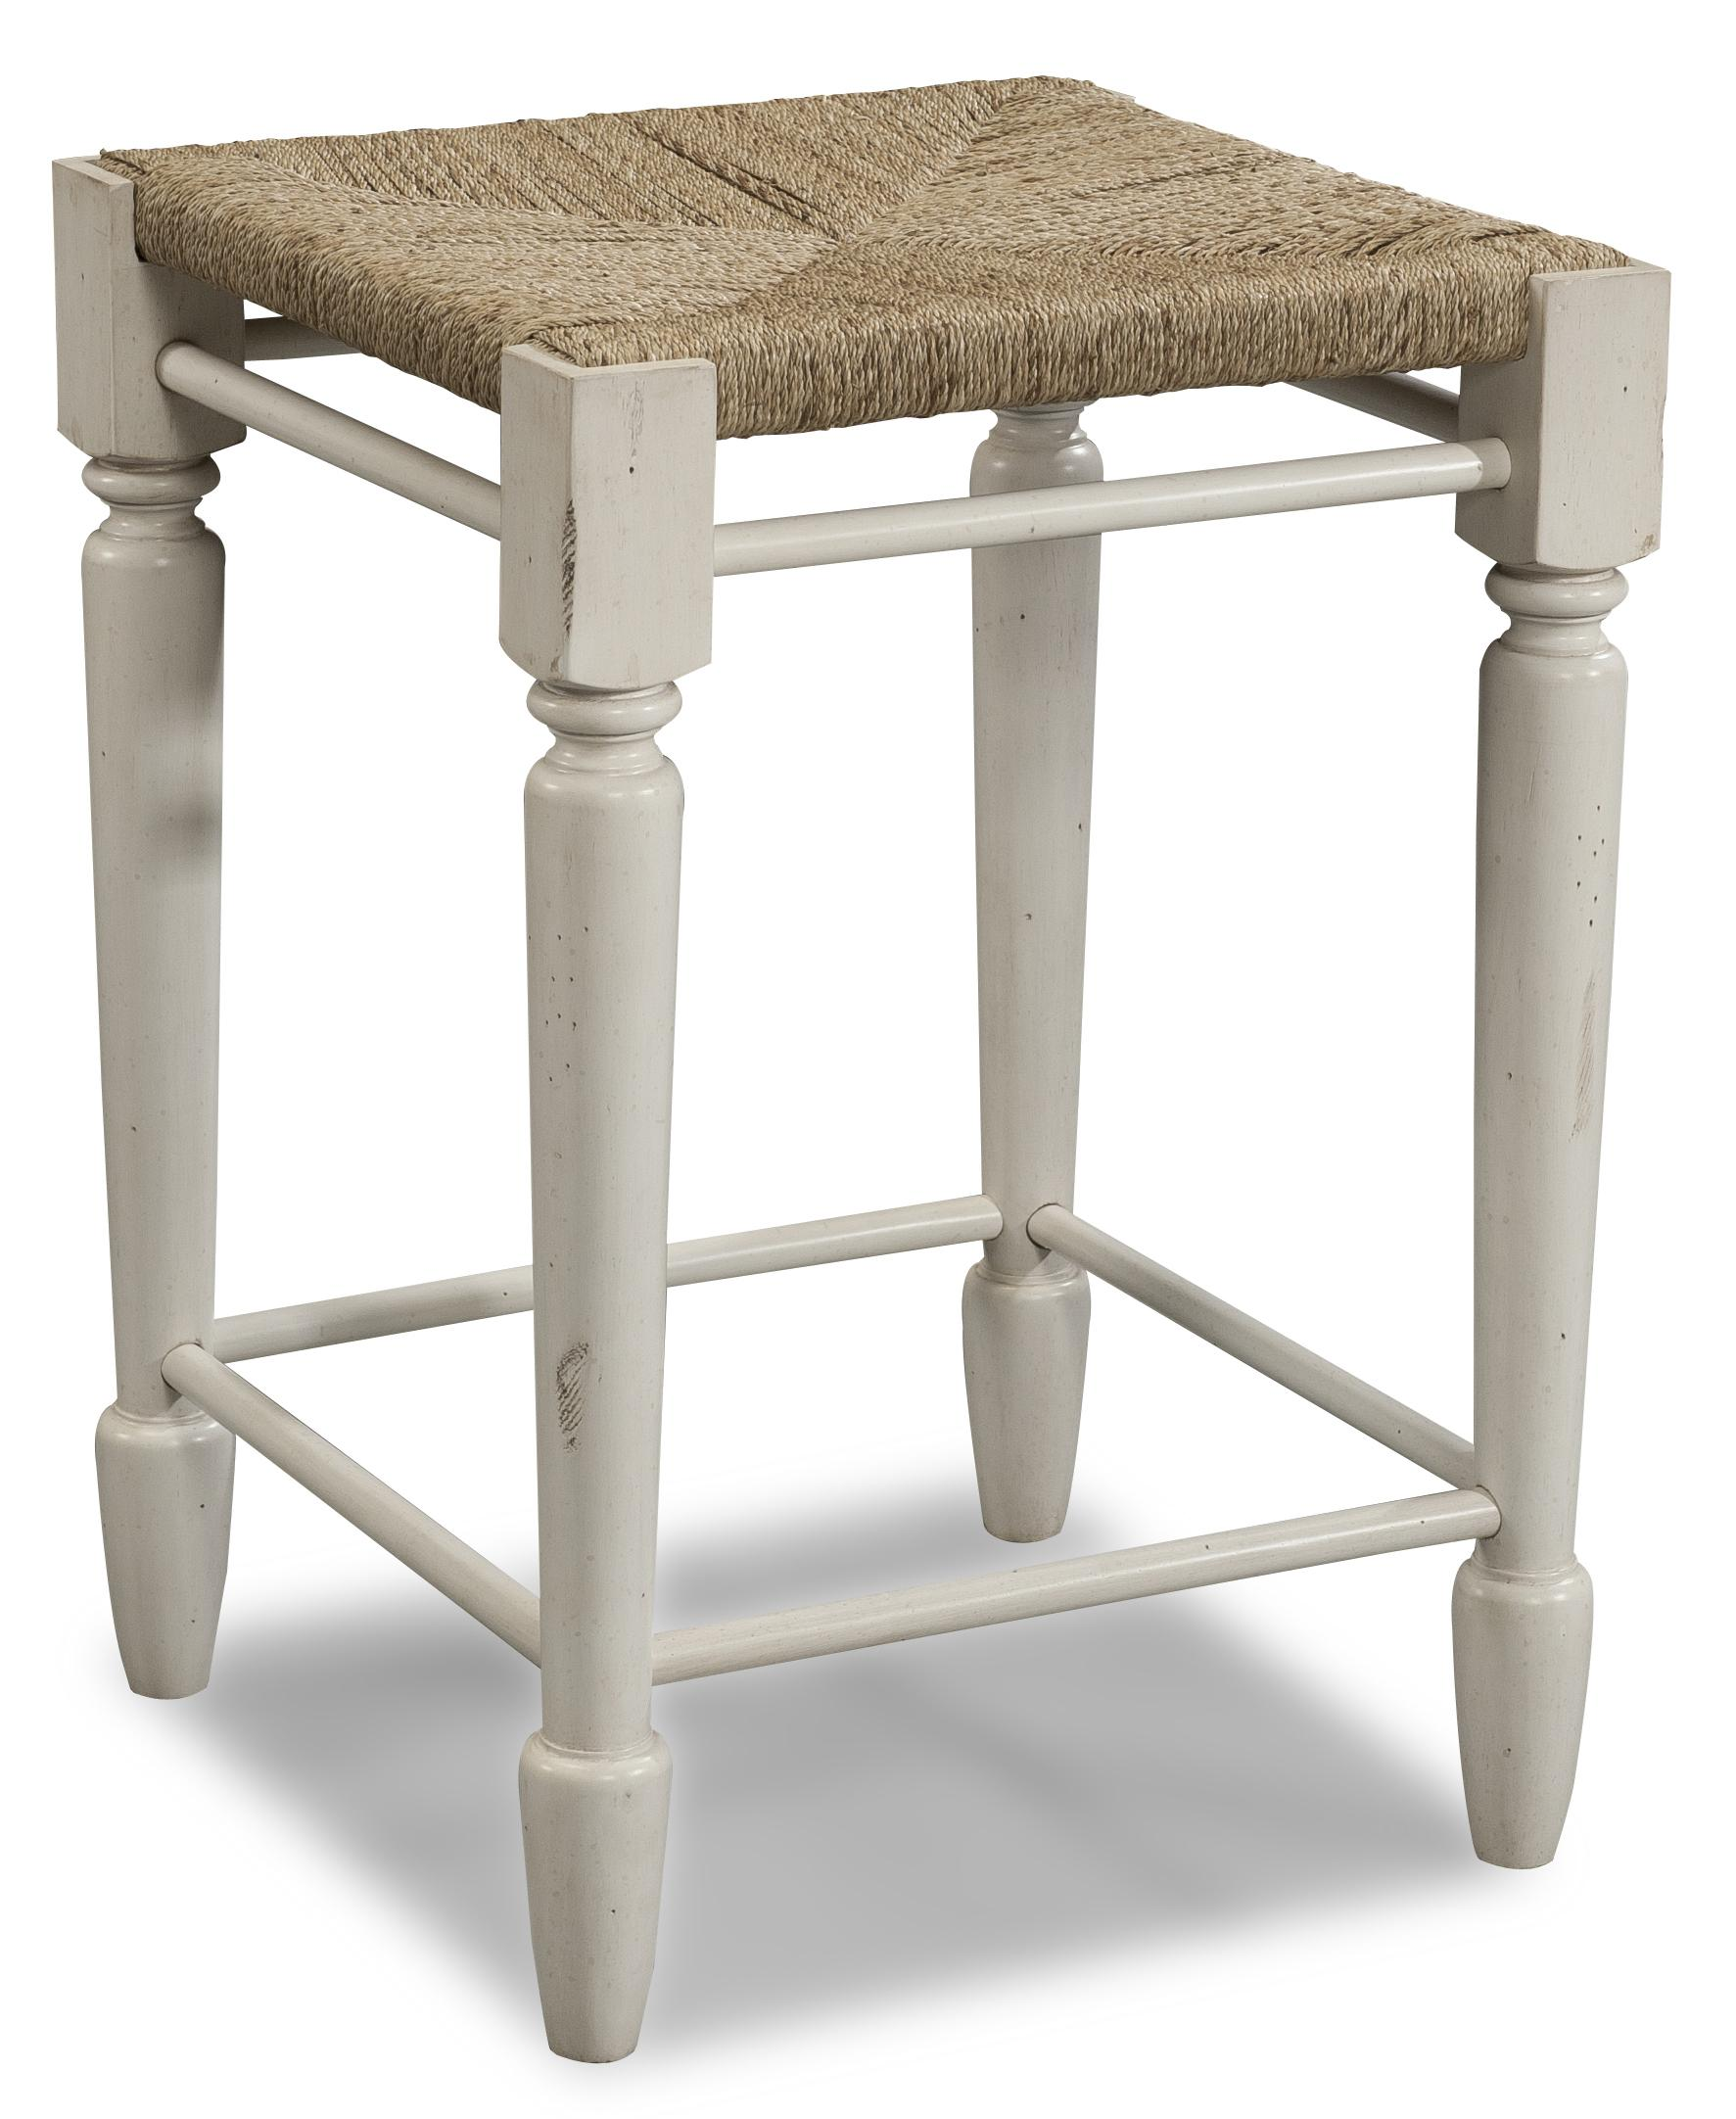 Easton Collection Sea Breeze White Desk Stool - Item Number: 424-920 STOOL